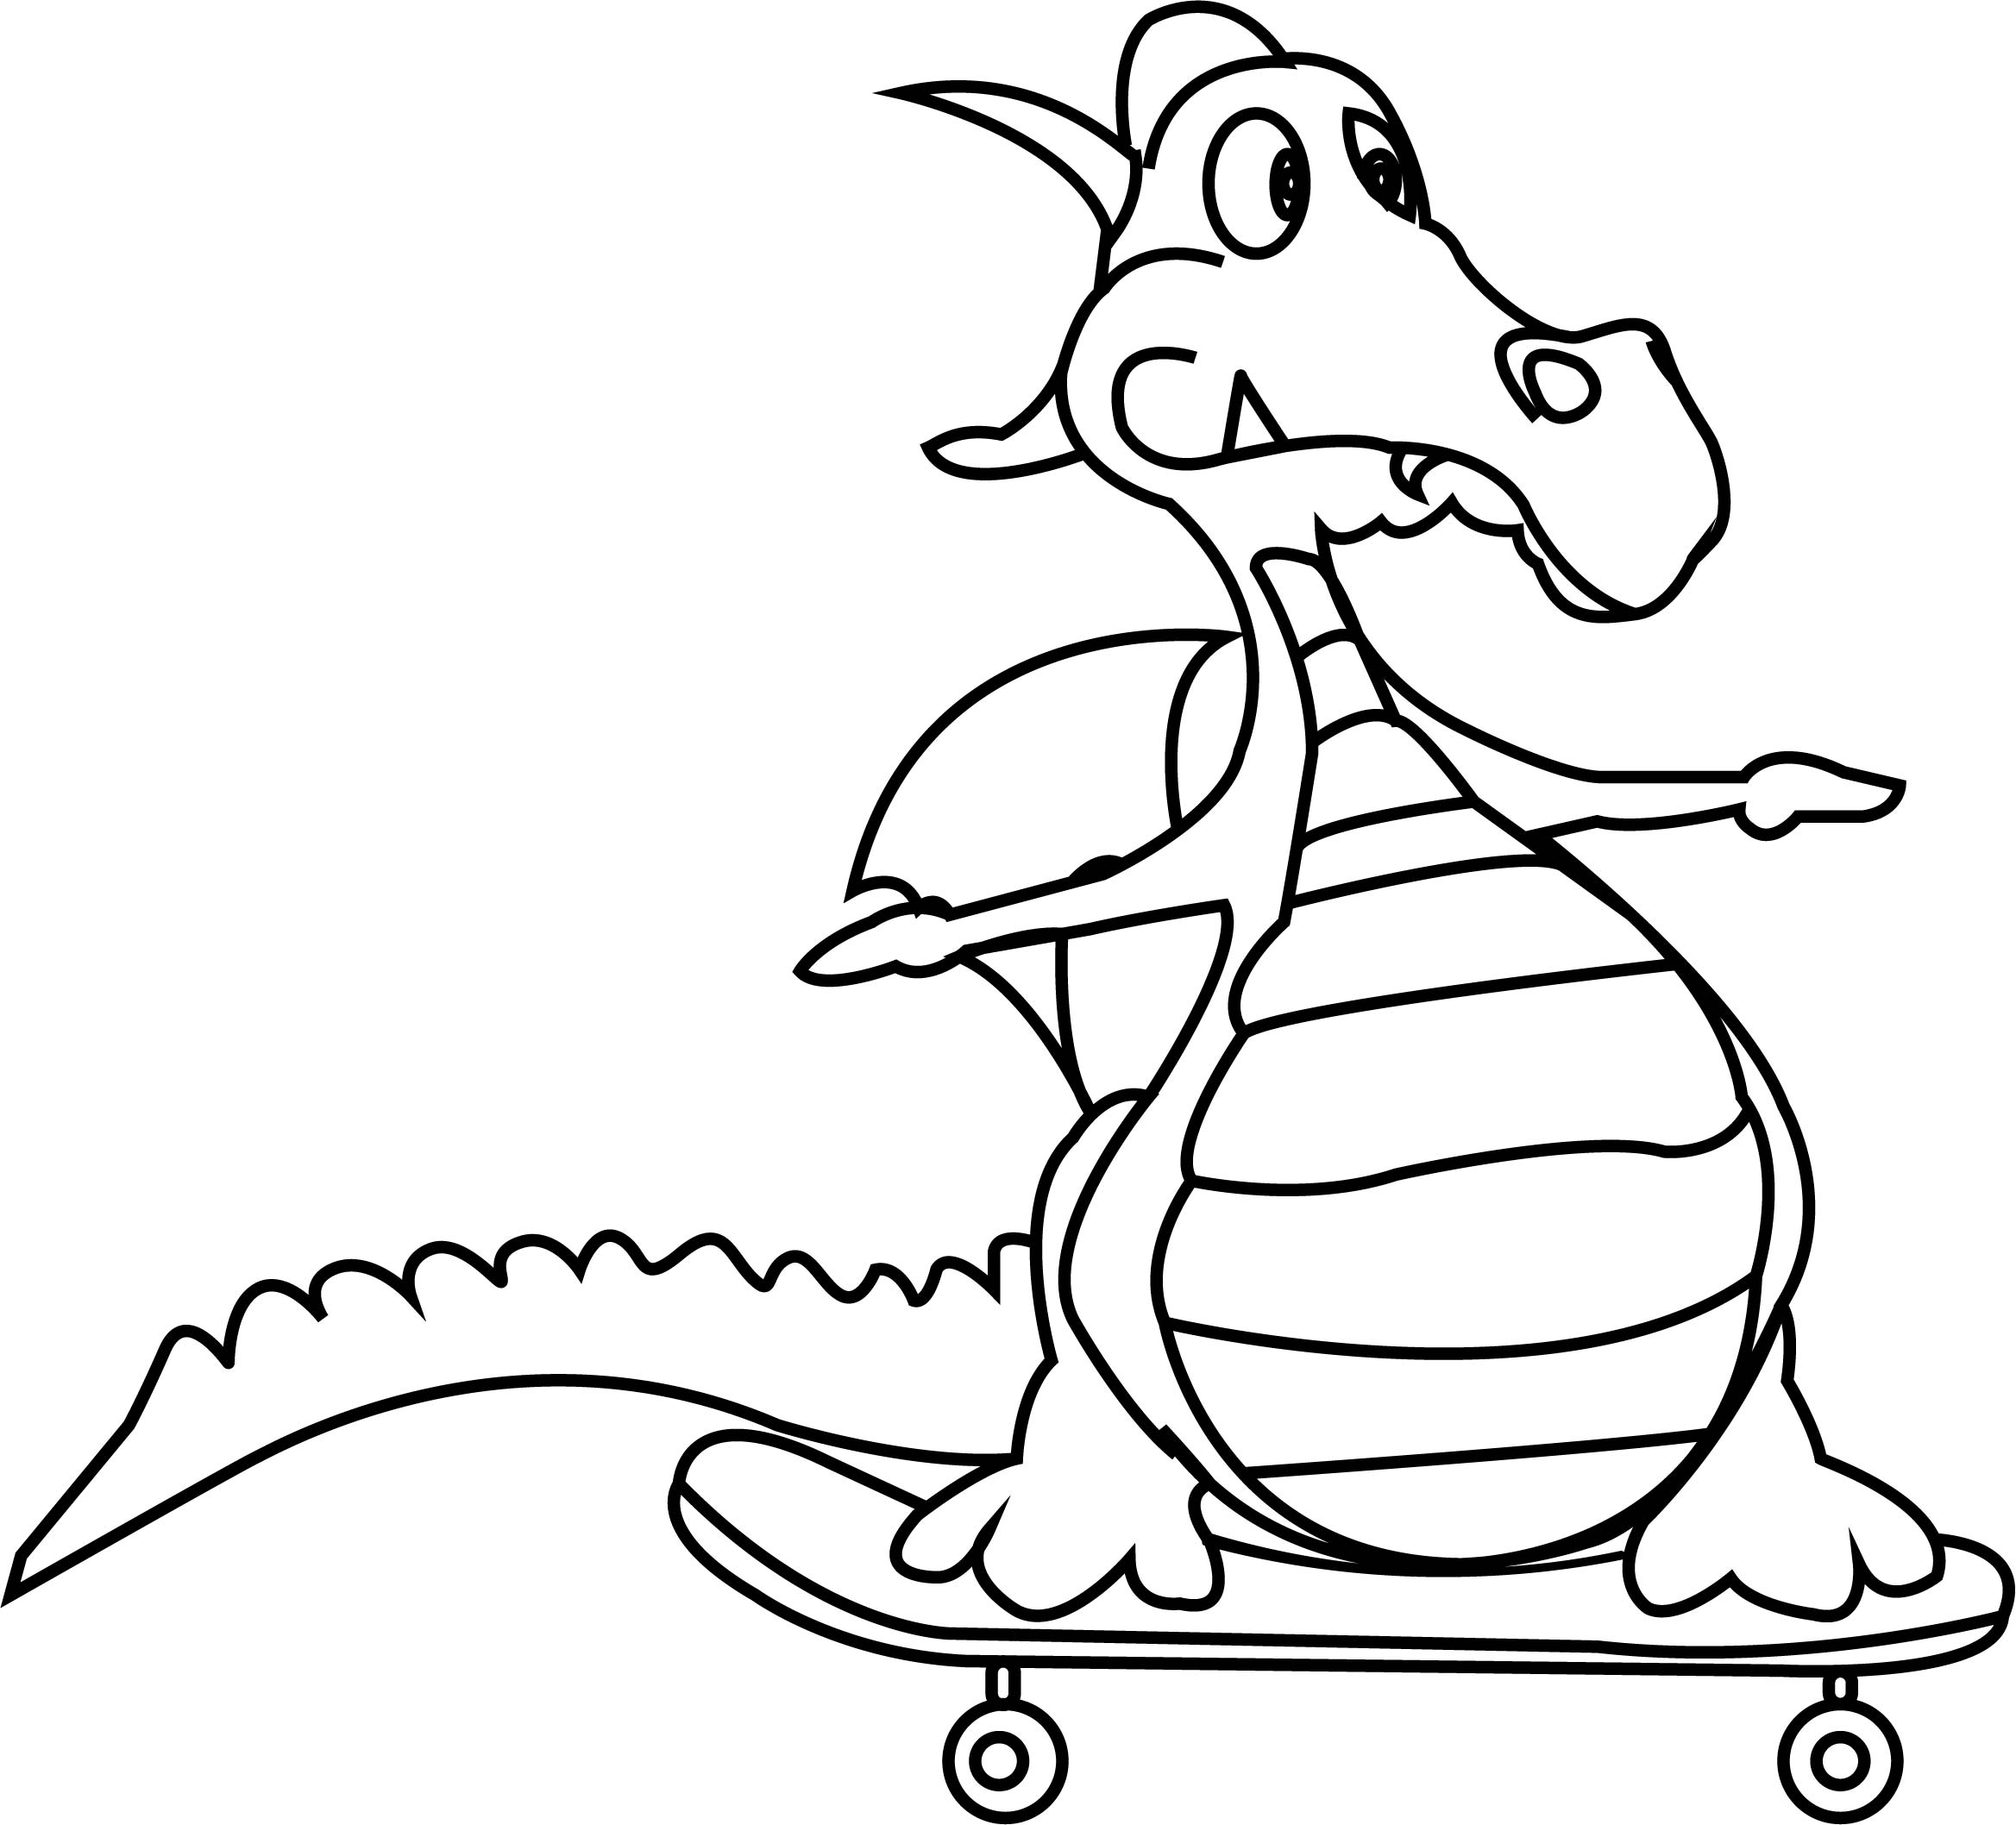 cartoon dragon very funny coloring page